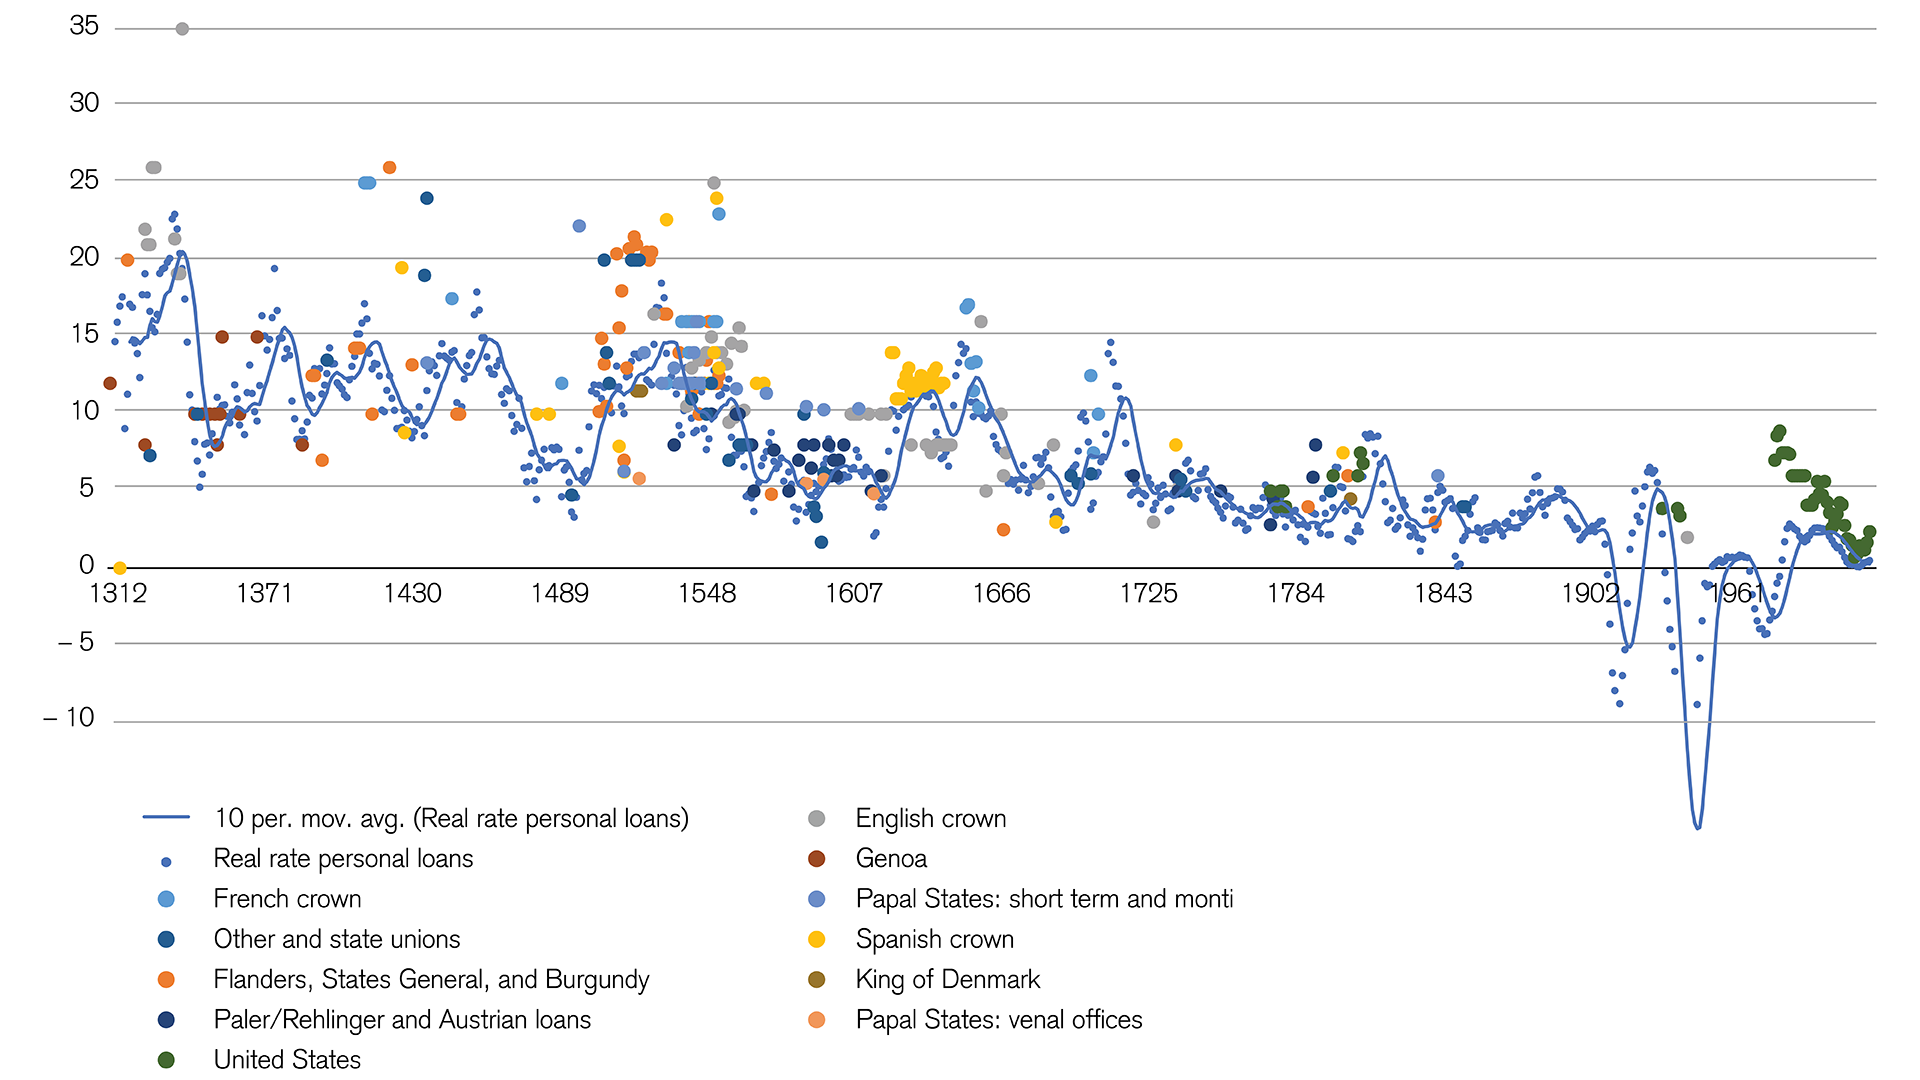 Interest rates: Trend for the past 700 years